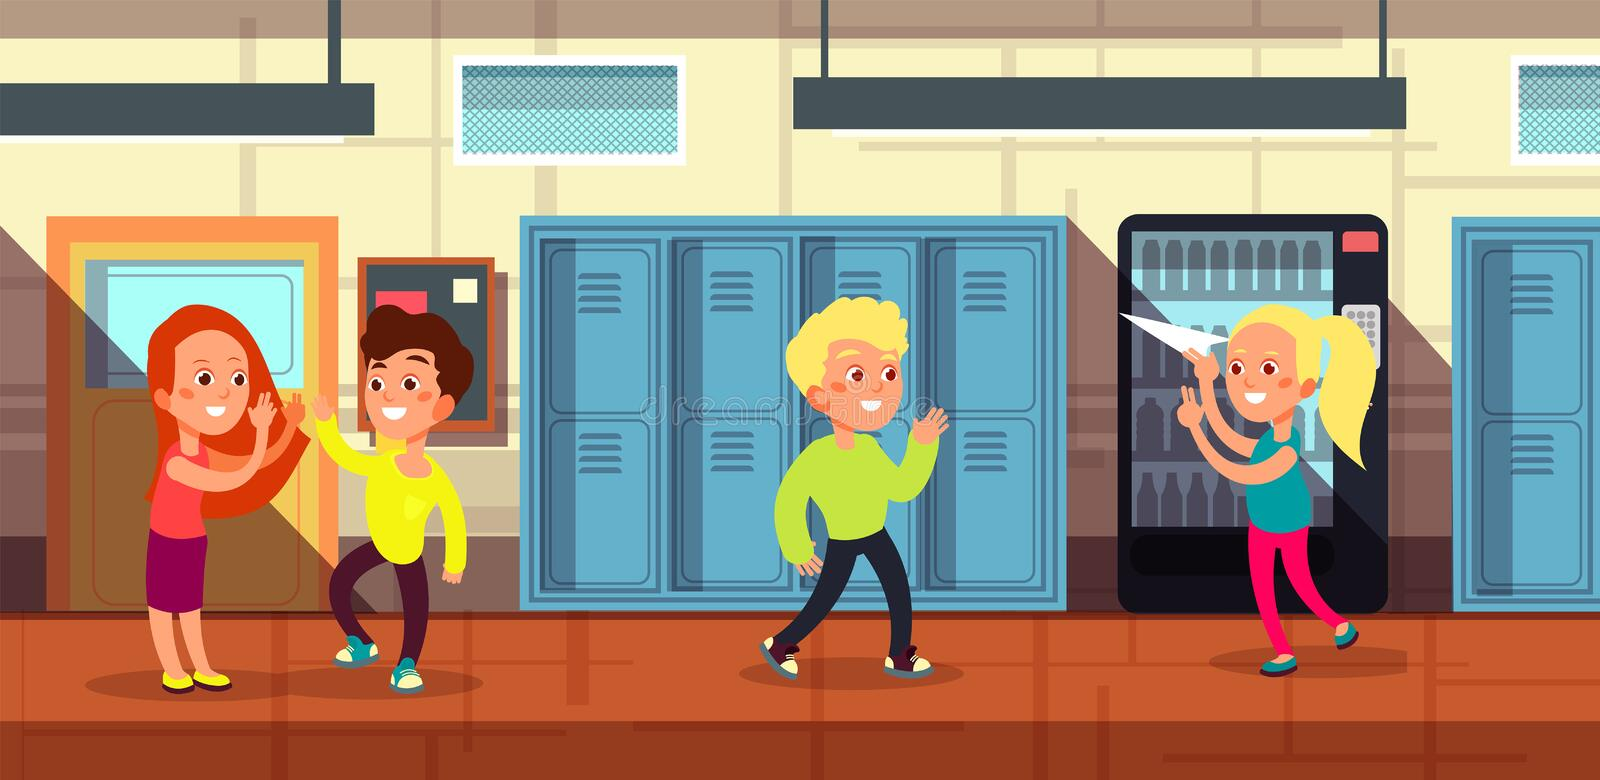 Schoolchildren in school corridor at classroom door cartoon vector illustration stock illustration